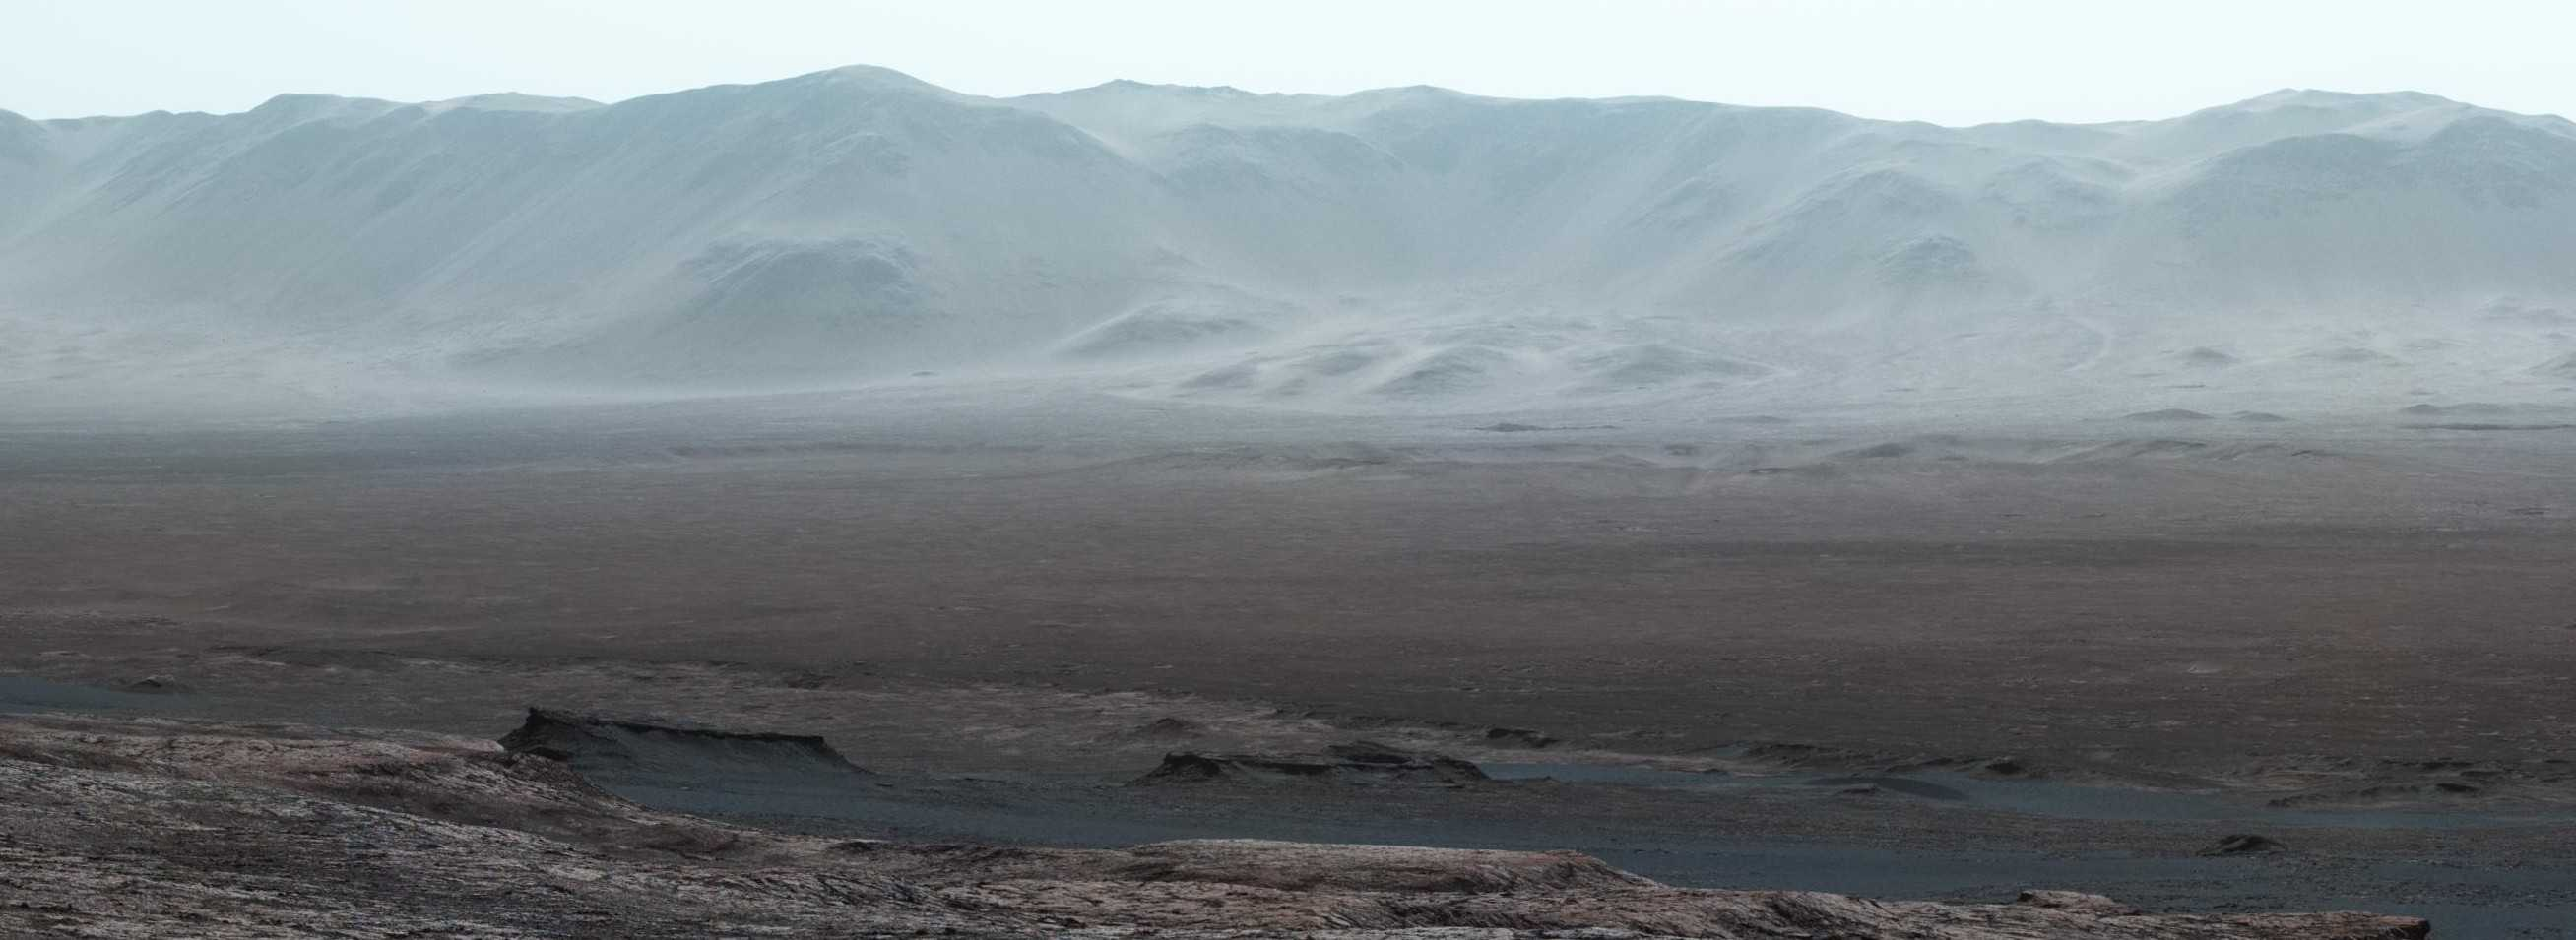 a panorama on mars. the sky is tinted blue, a drop into a valley is in the foreground, with the rising edge of a crater in the background